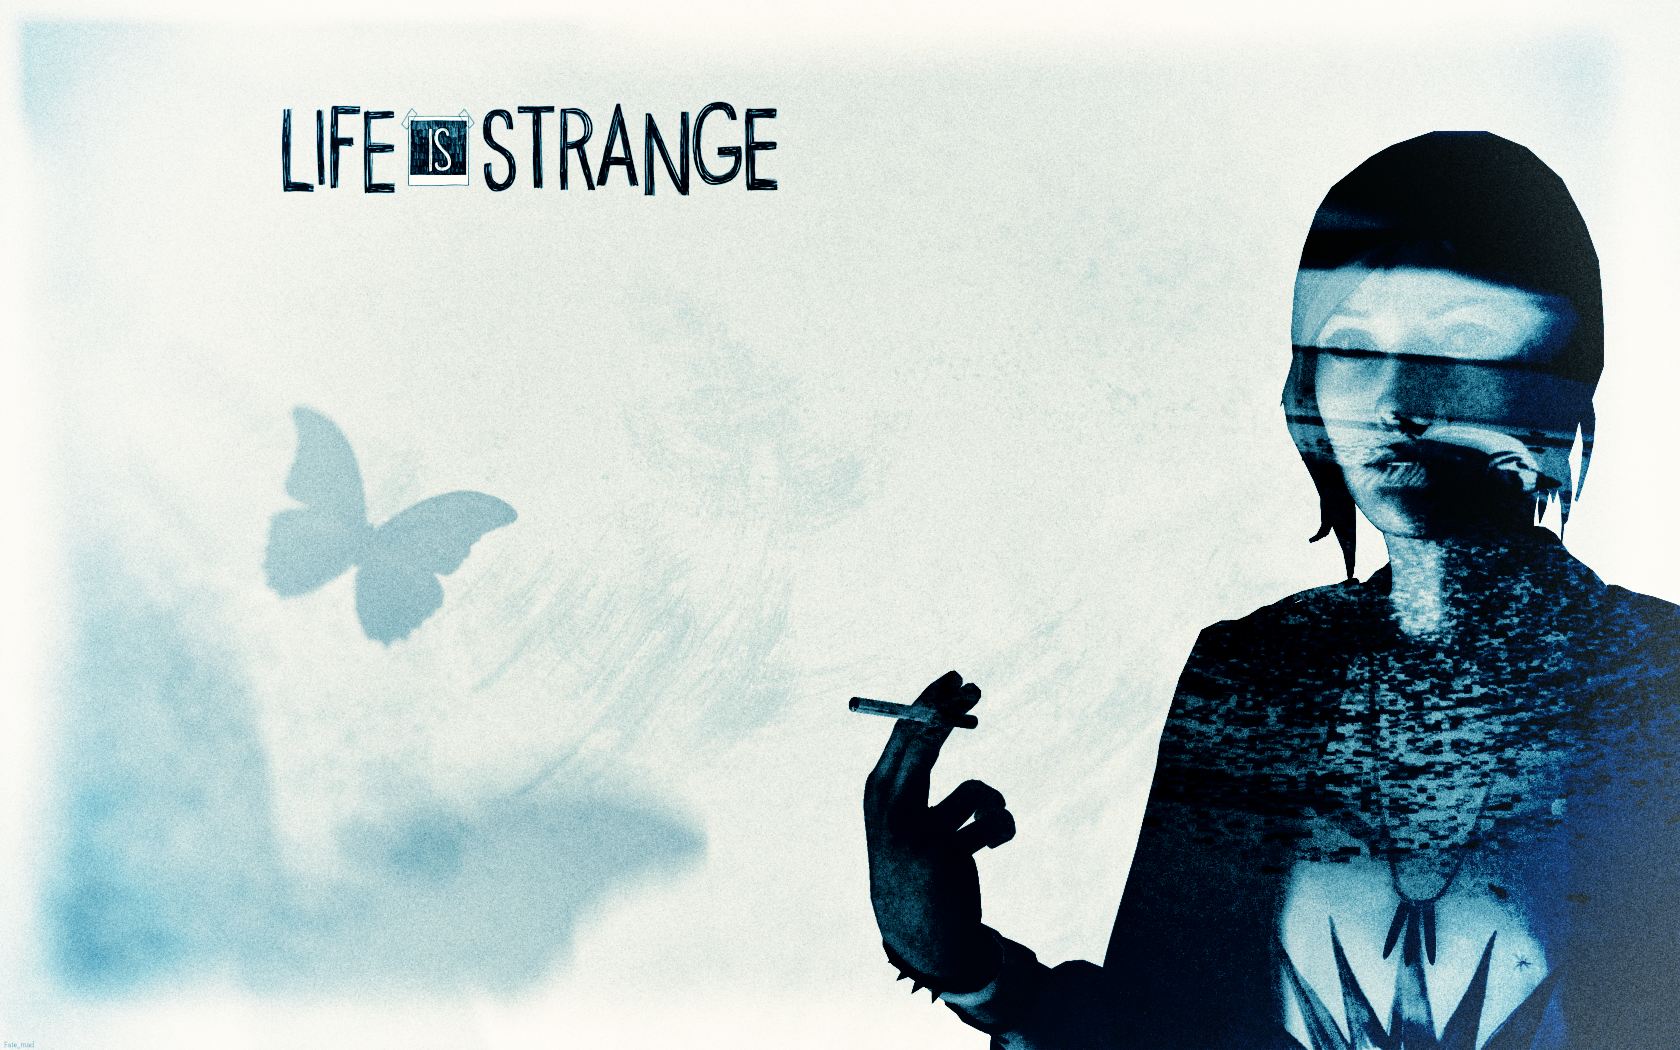 Free Download Life Is Strange Chloe By Nickkarlow 1680x1050 For